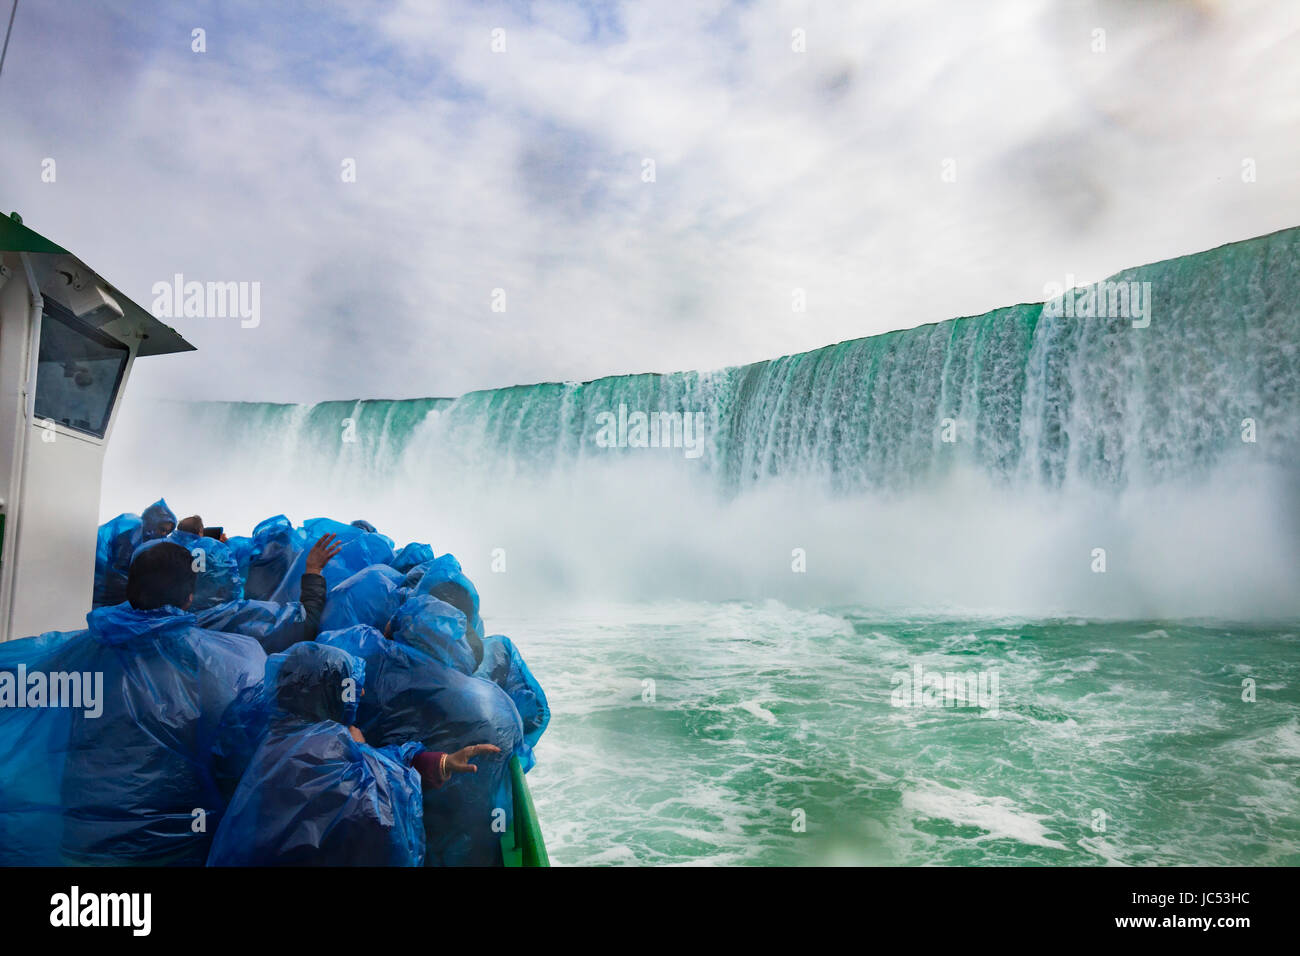 "A boat of tourists huddle under blue plastic ponchos to keep the drenching waterfall spray off as the boat, ""Maid - Stock Image"